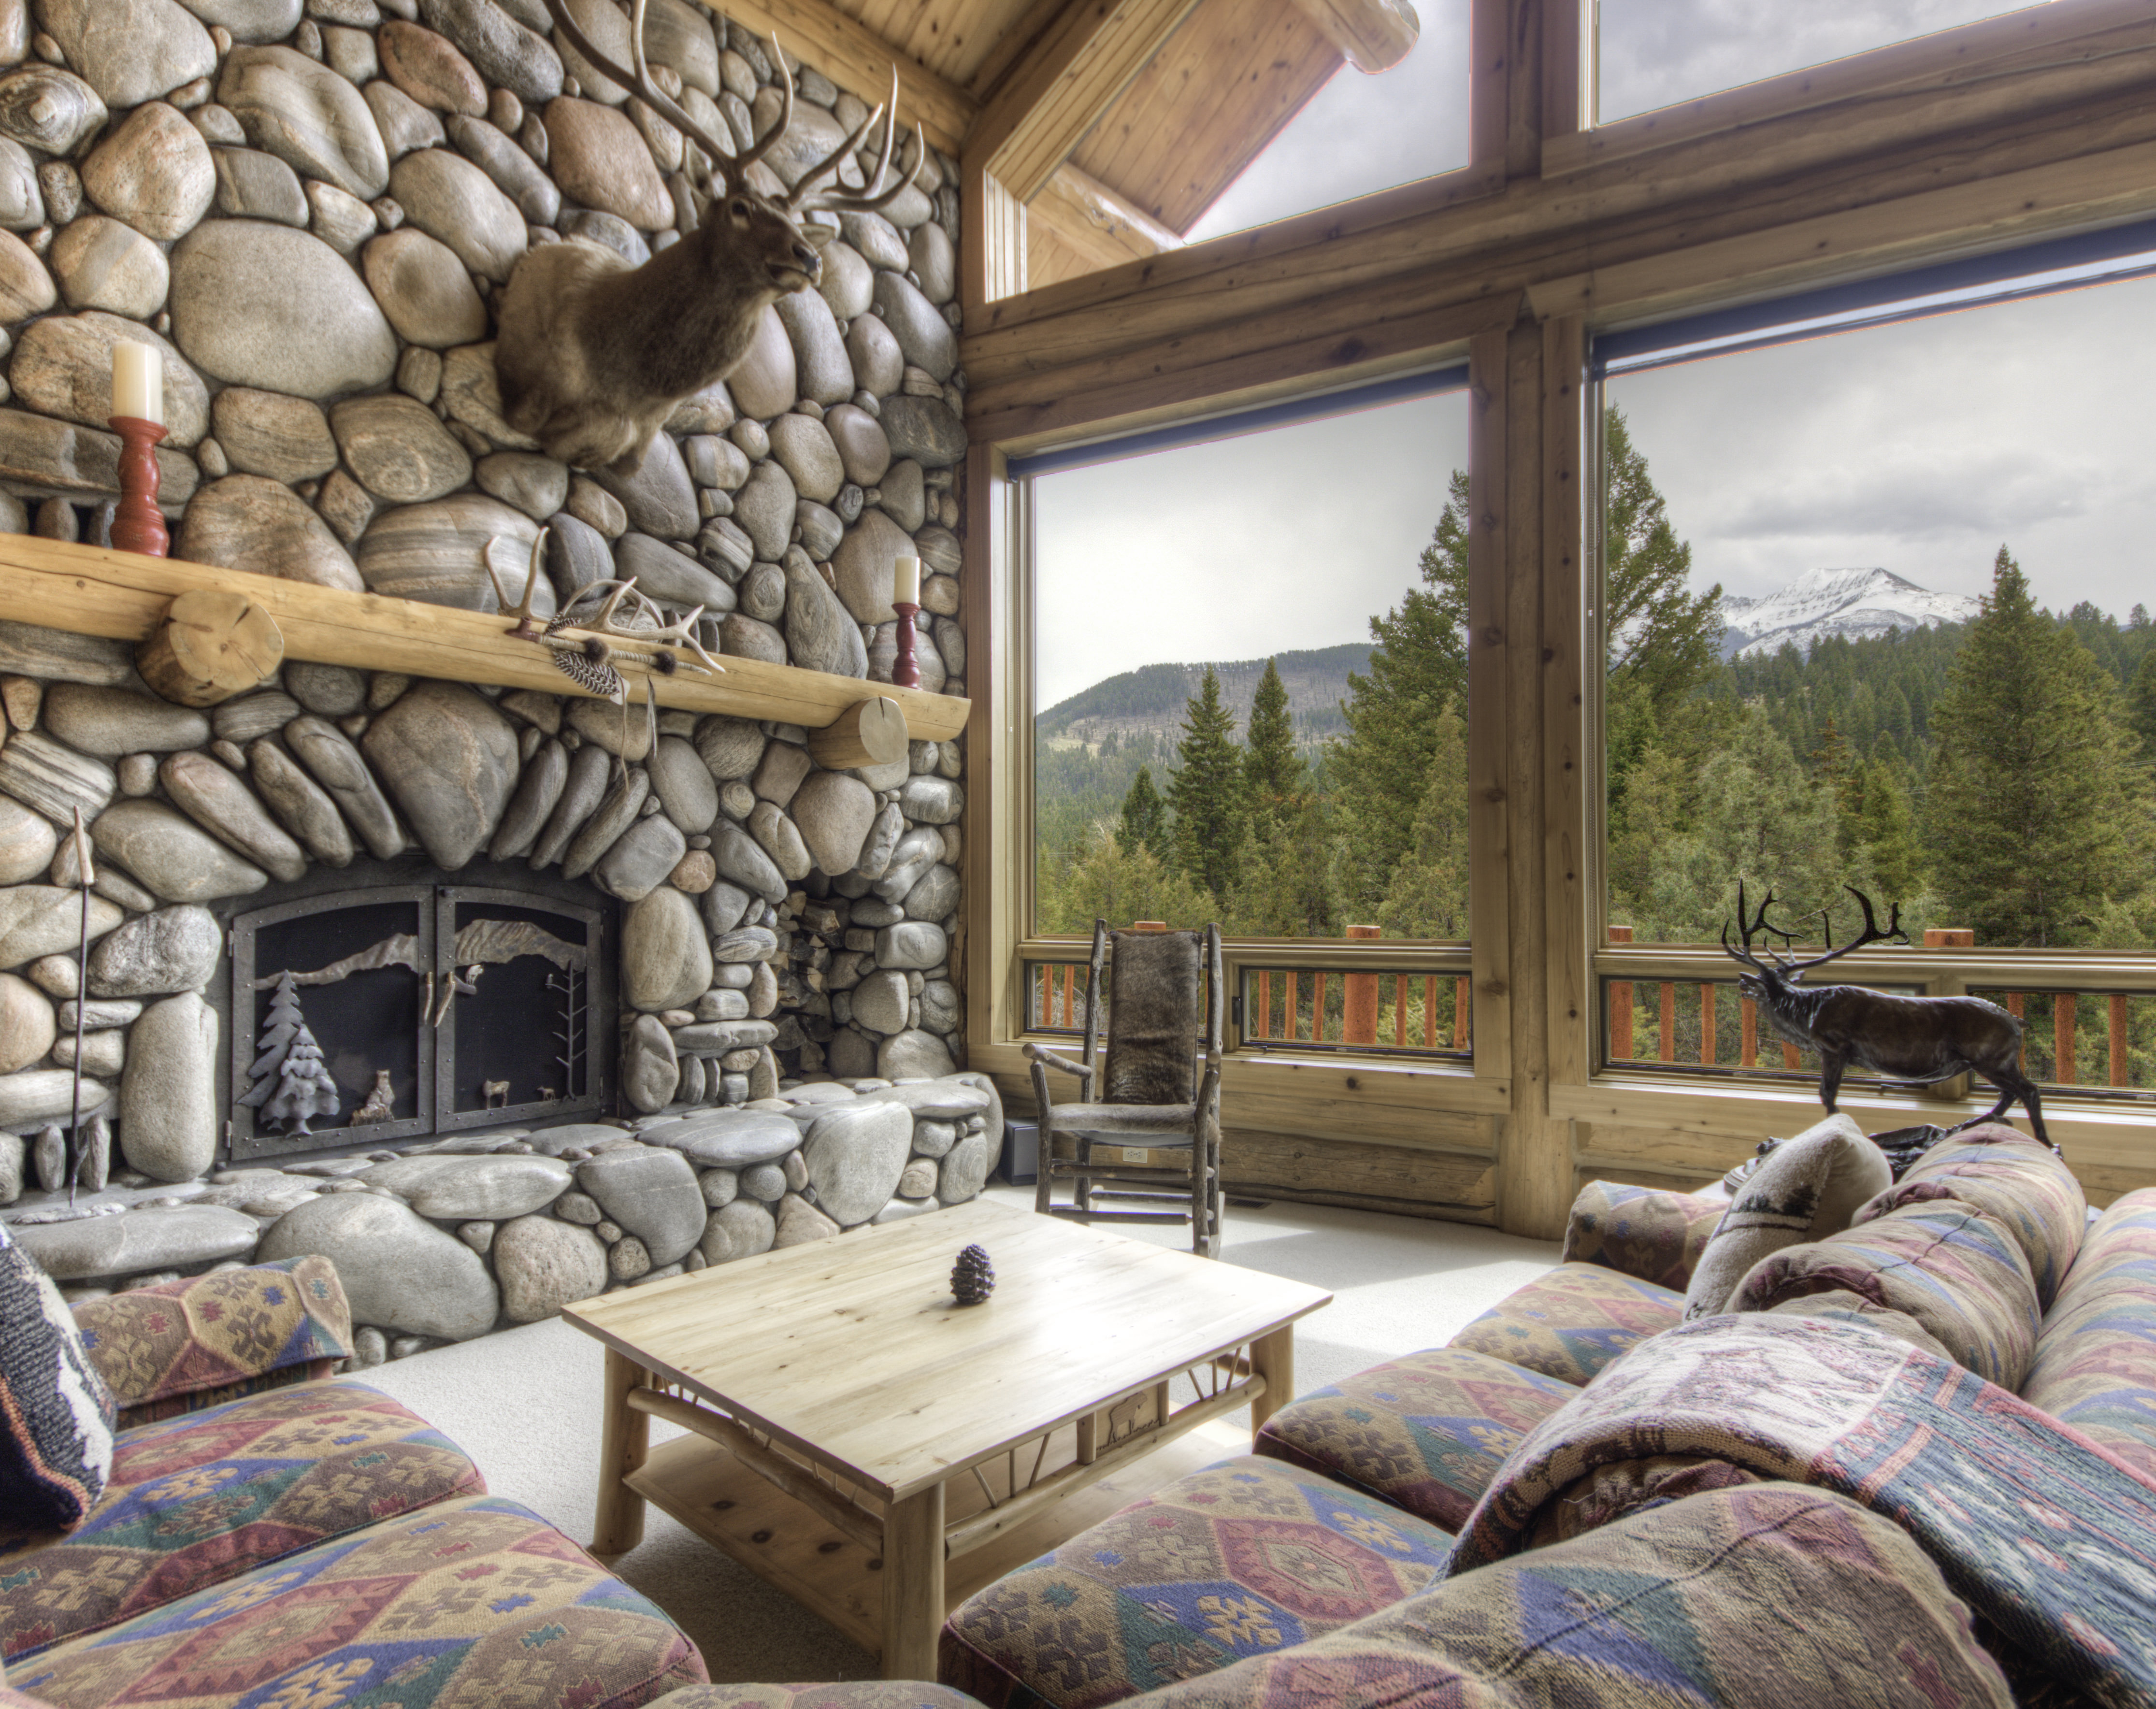 Luxury Home With Large Living Space On This Montana Property For Sale